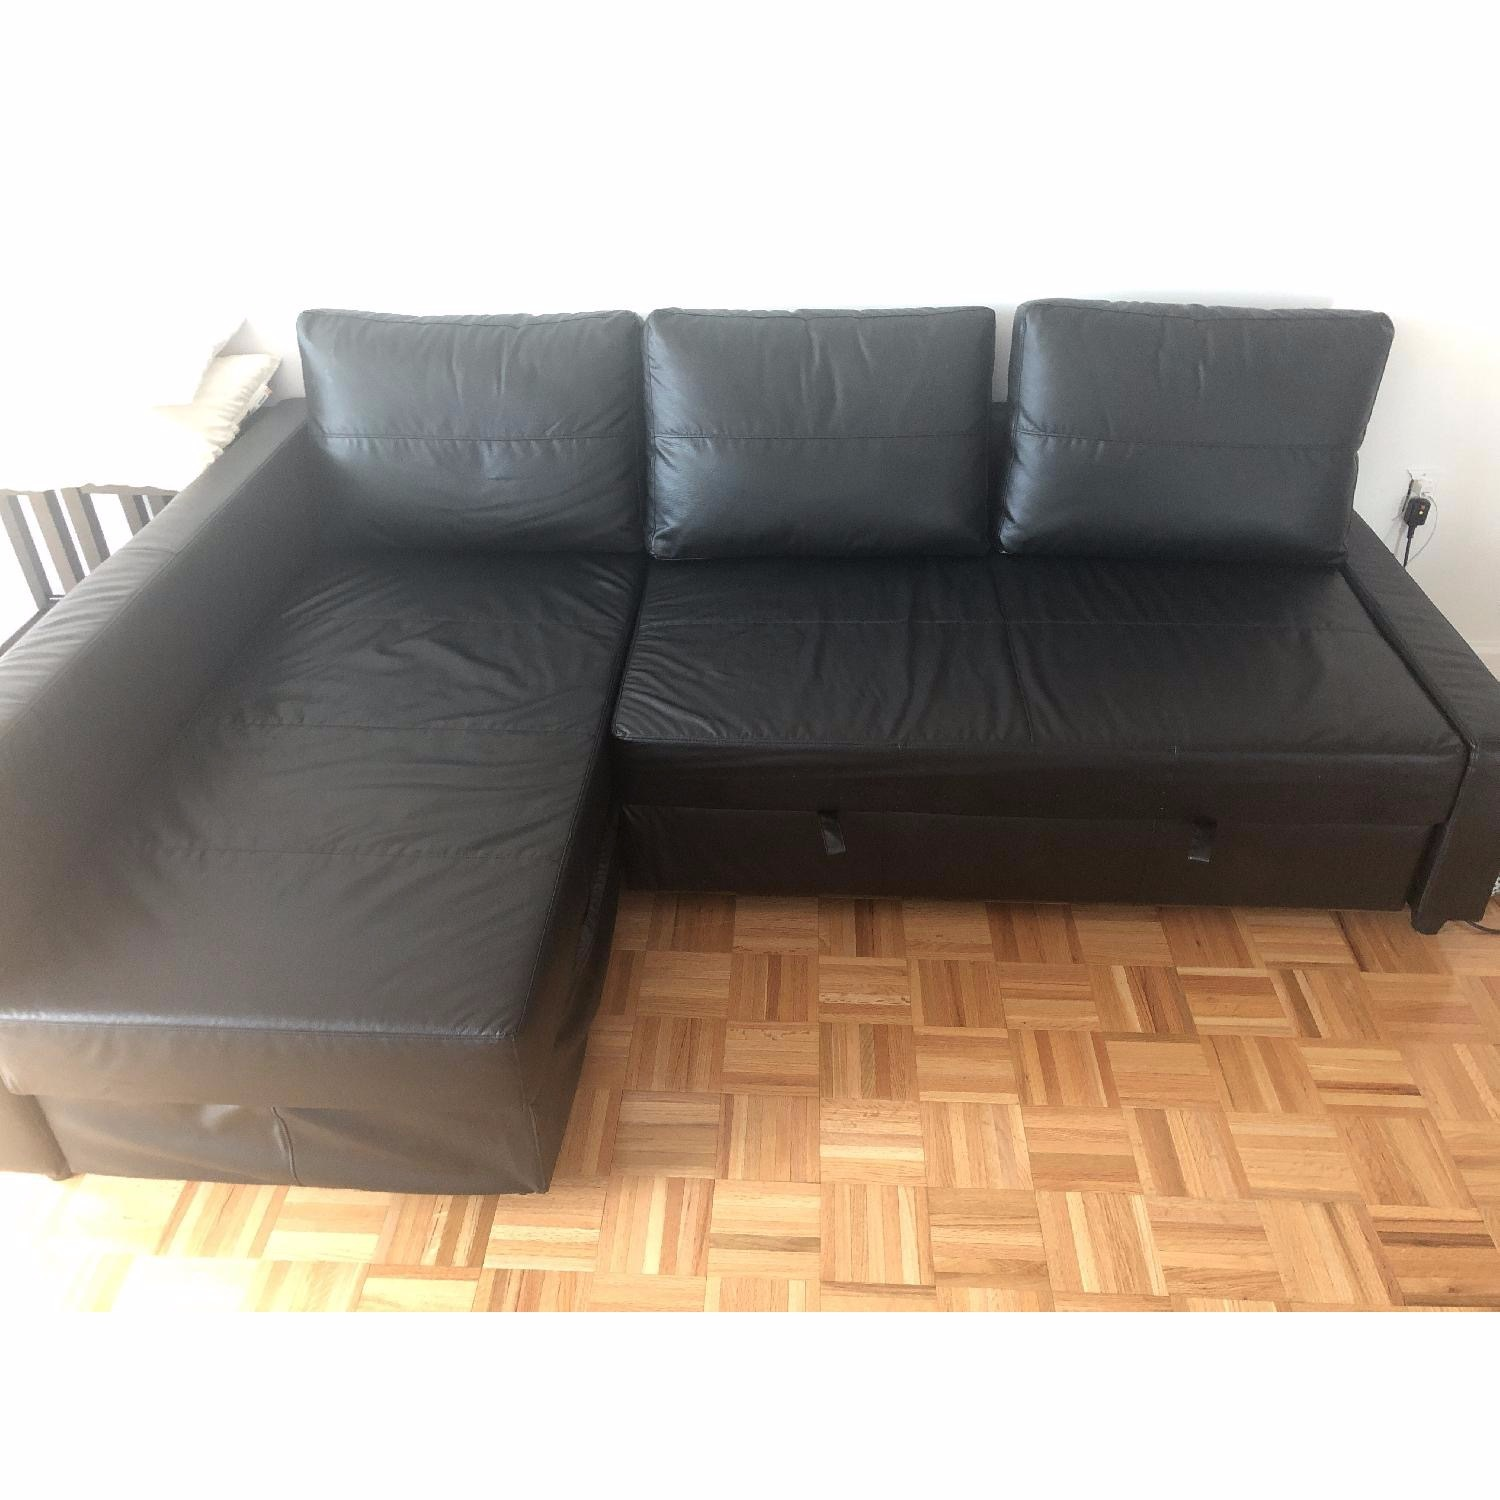 IKEA Black Sleeper Sofa - image-3